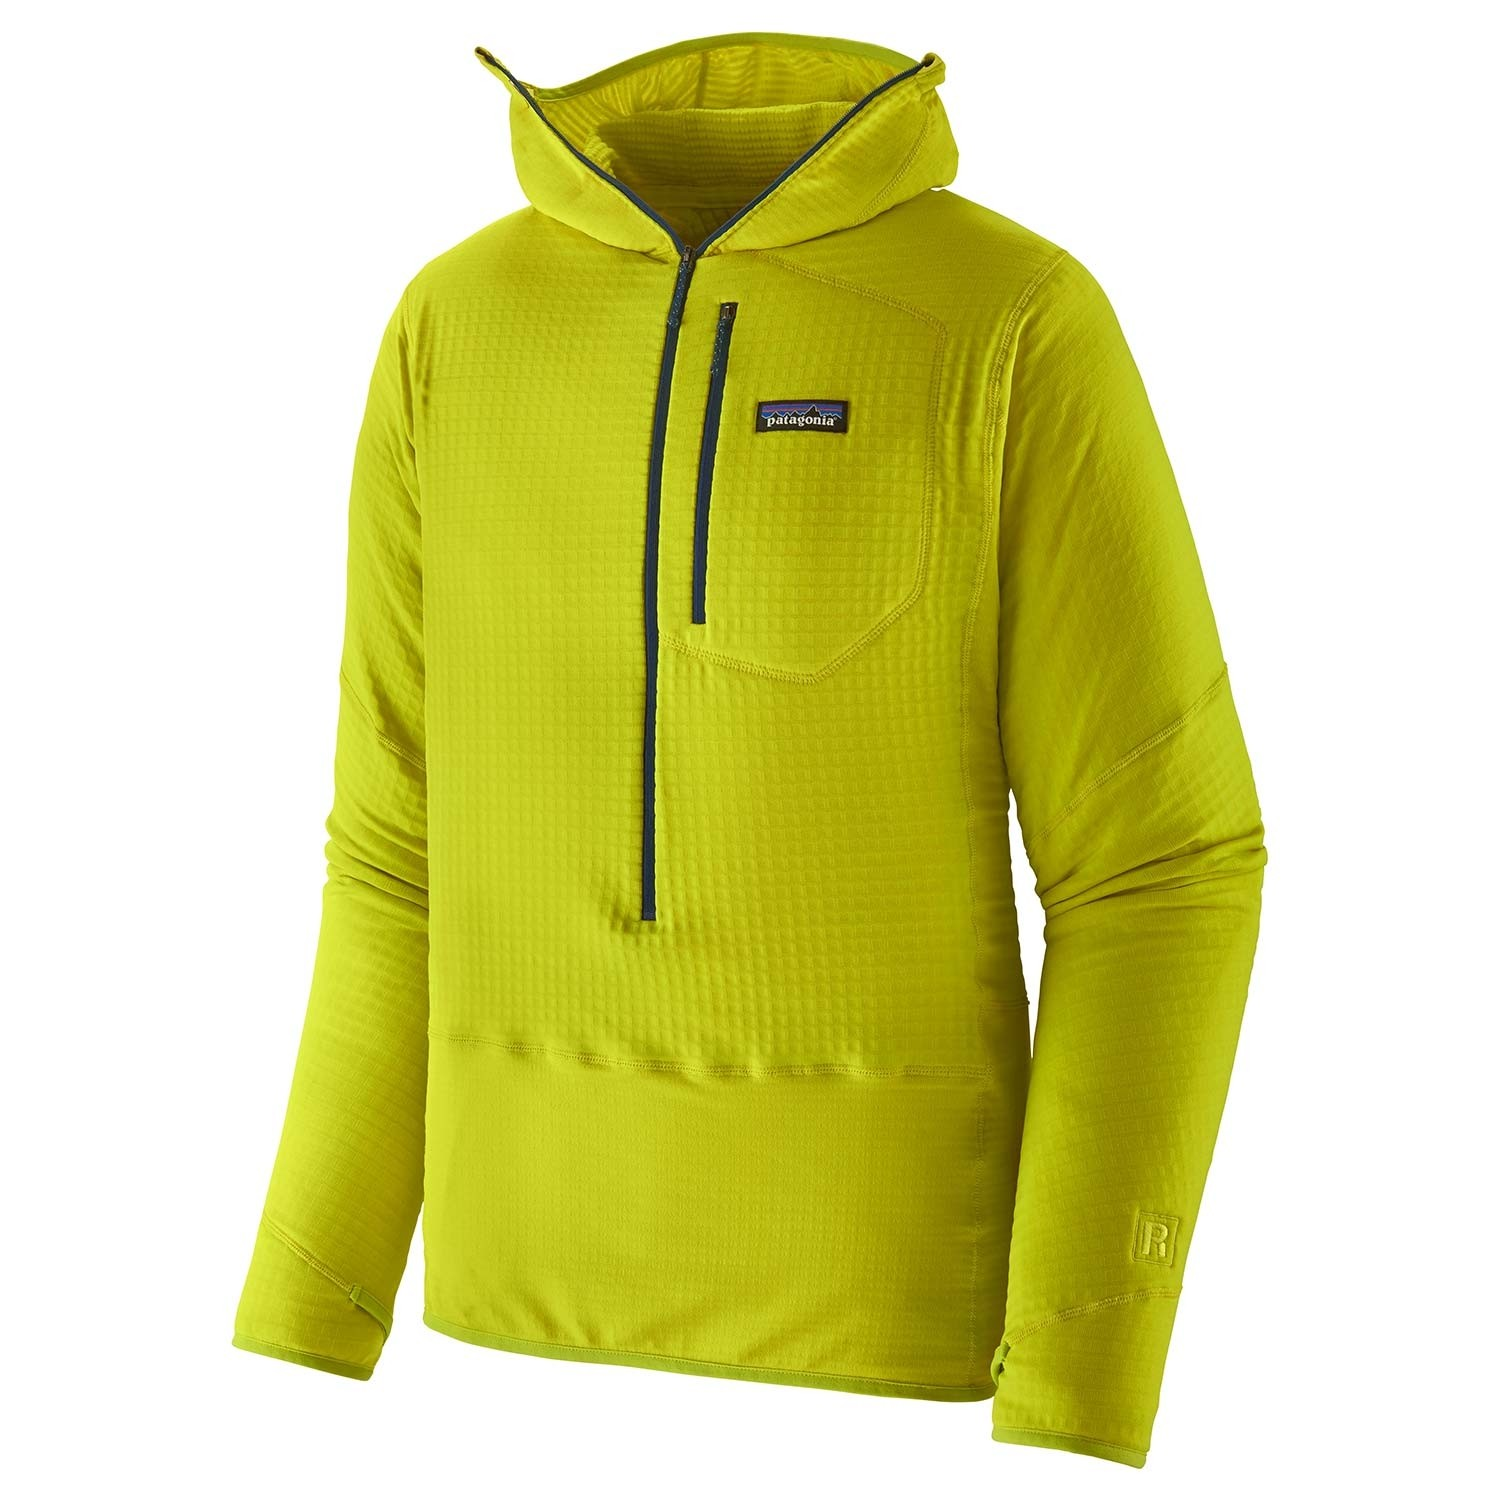 Patagonia R1 Pullover Hoody - Men's - Chartreuse